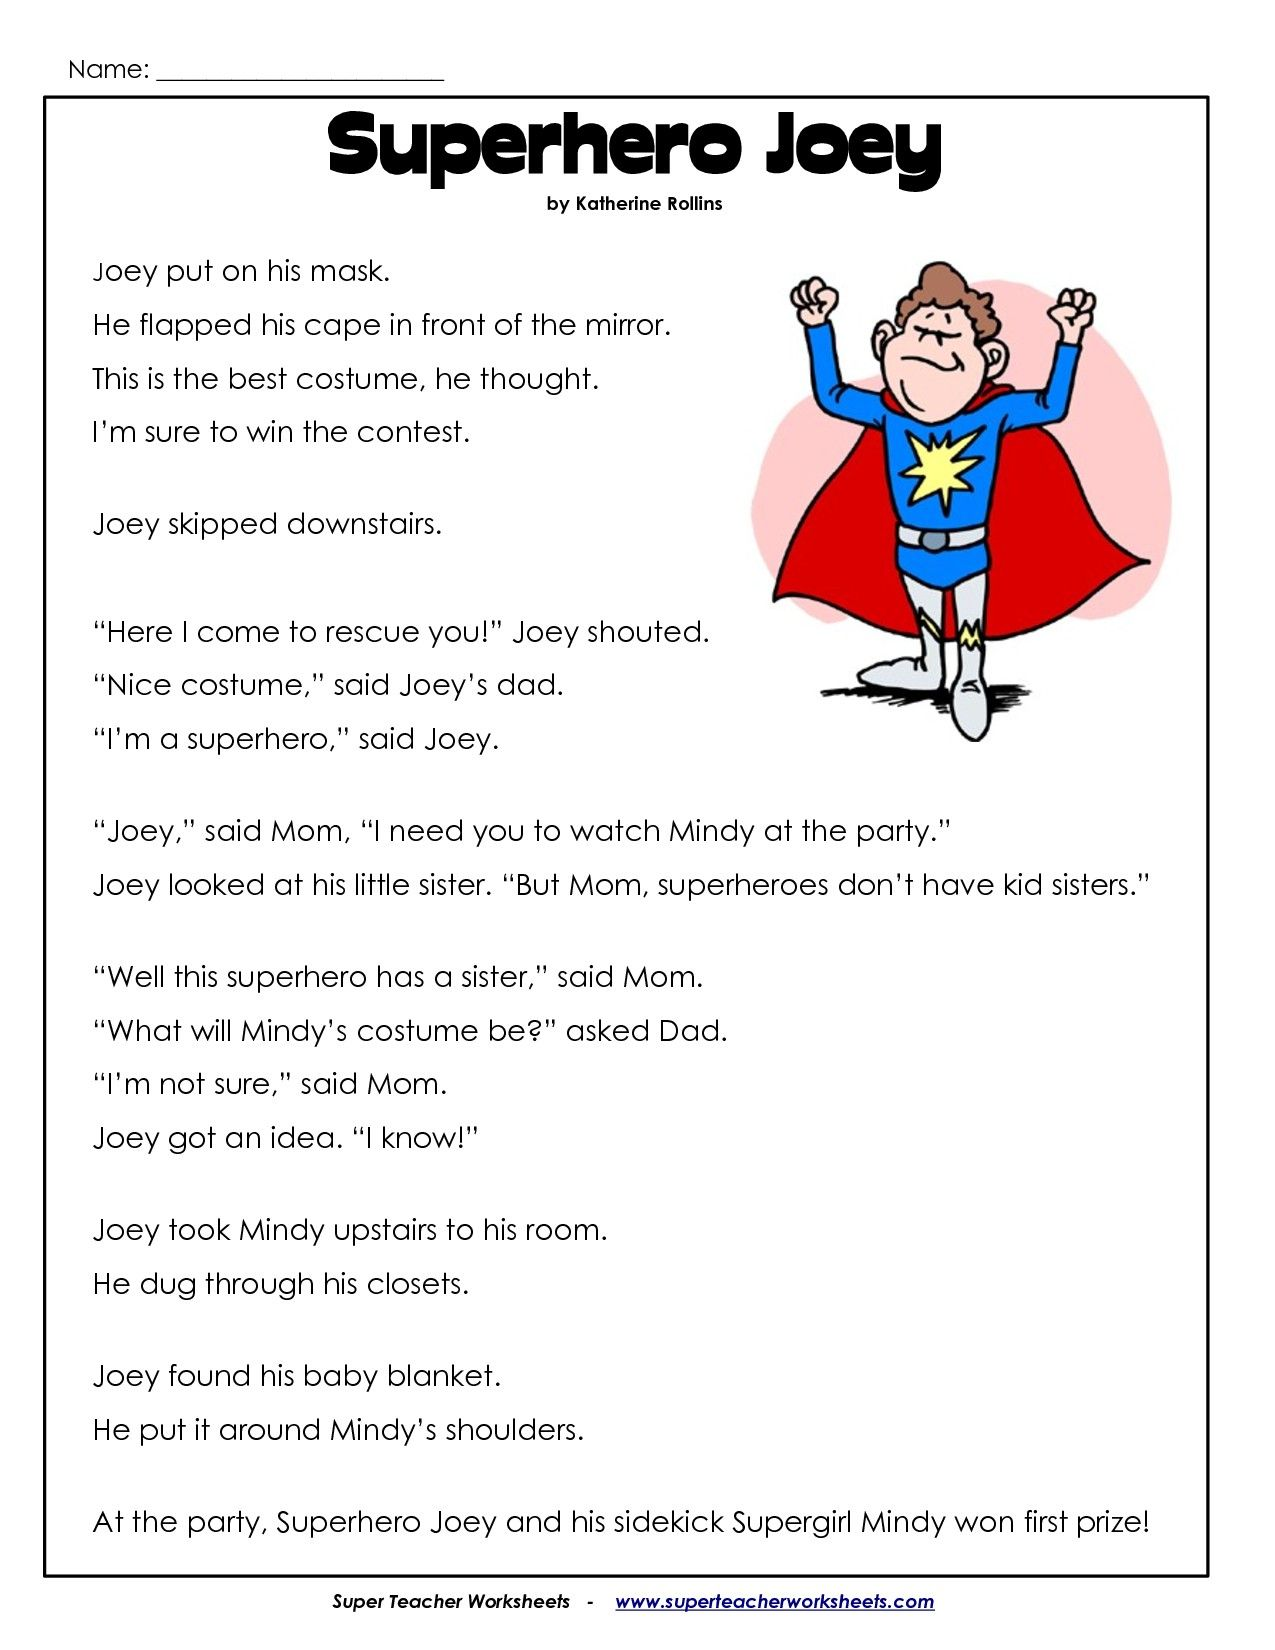 Worksheets Reading Comprehension Worksheets 2nd Grade second grade reading comprehension worksheet the cowboy 2nd worksheets pdf